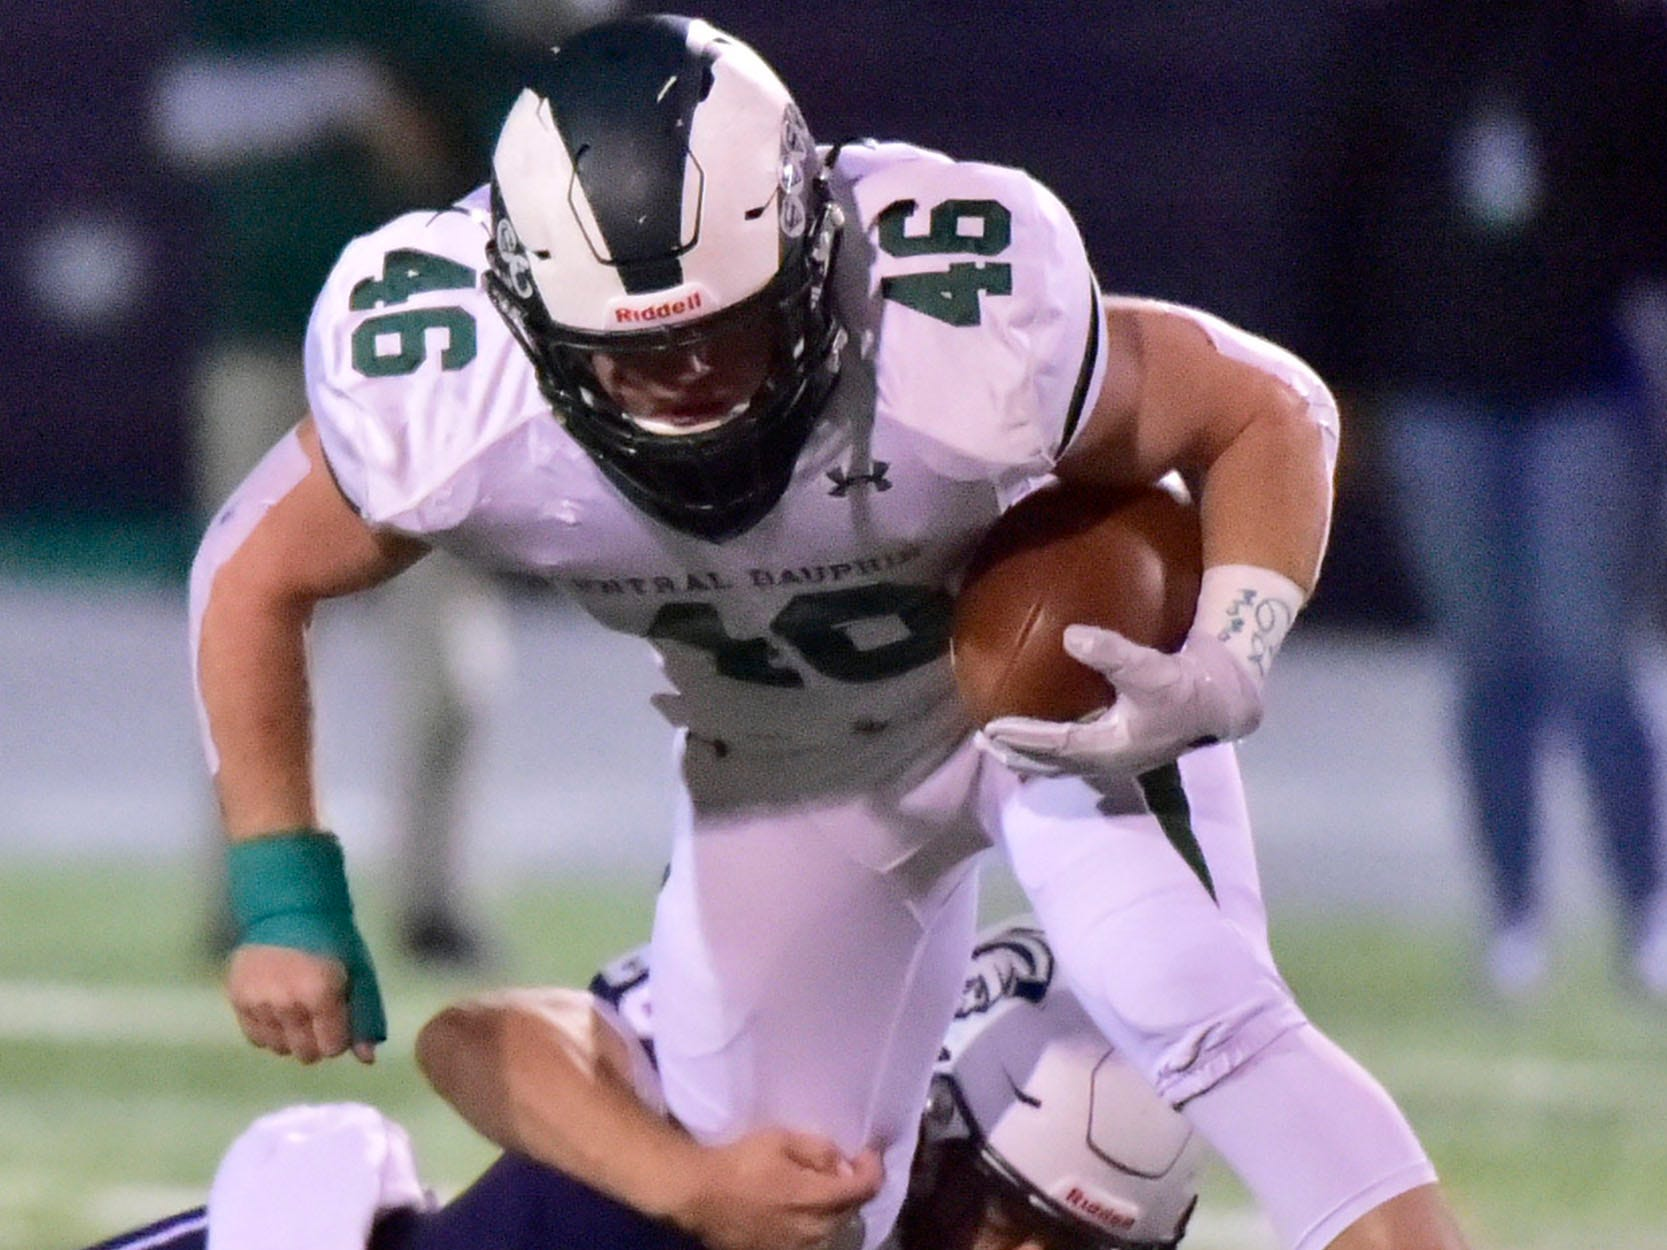 CD's Adam Burkhart (46) runs the ball before being tackled by Kyere Morton (20) Chambersburg lost to Central Dauphin in PIAA football on Friday, Oct. 19, 2018.